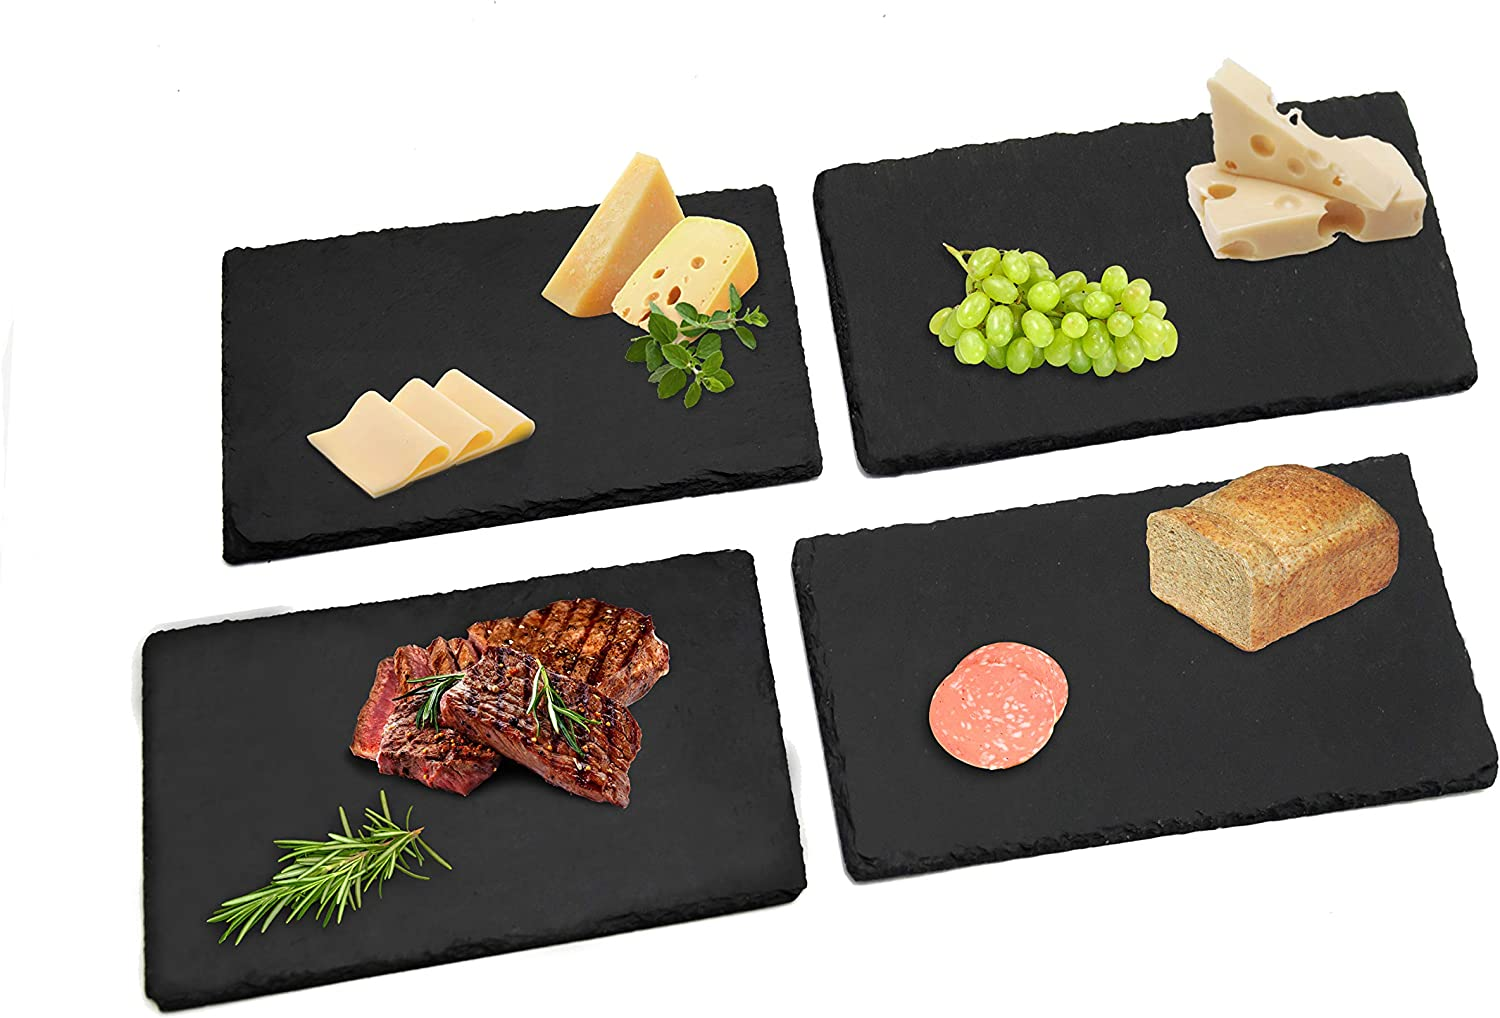 Large Slate Plates 12x8 In(30×20cm),4pc Natural Stone Rock Black Cutting Board ,Cheese Board,Charcuterie Boards for Cheese,Sushi mat,Pastry,bread,Snack board and Meat Set (Black Board Set of 4 Pcs)